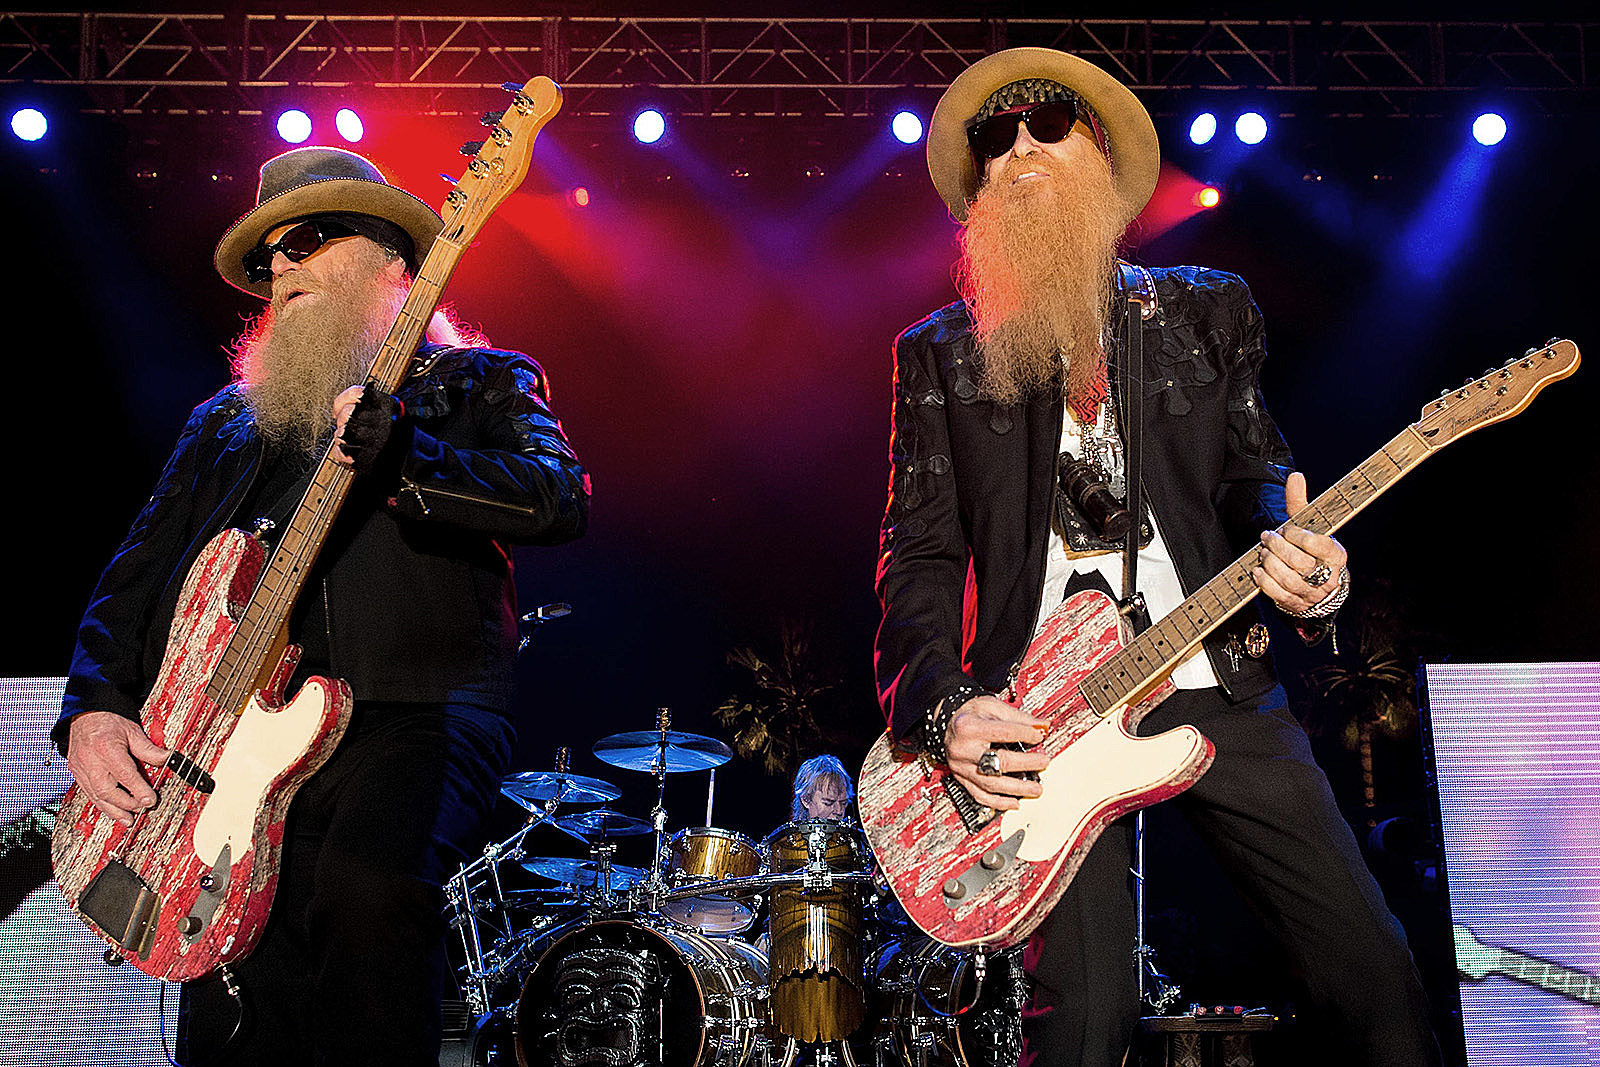 Dusty Hill Recorded Vocal Tracks for New ZZ Top Album